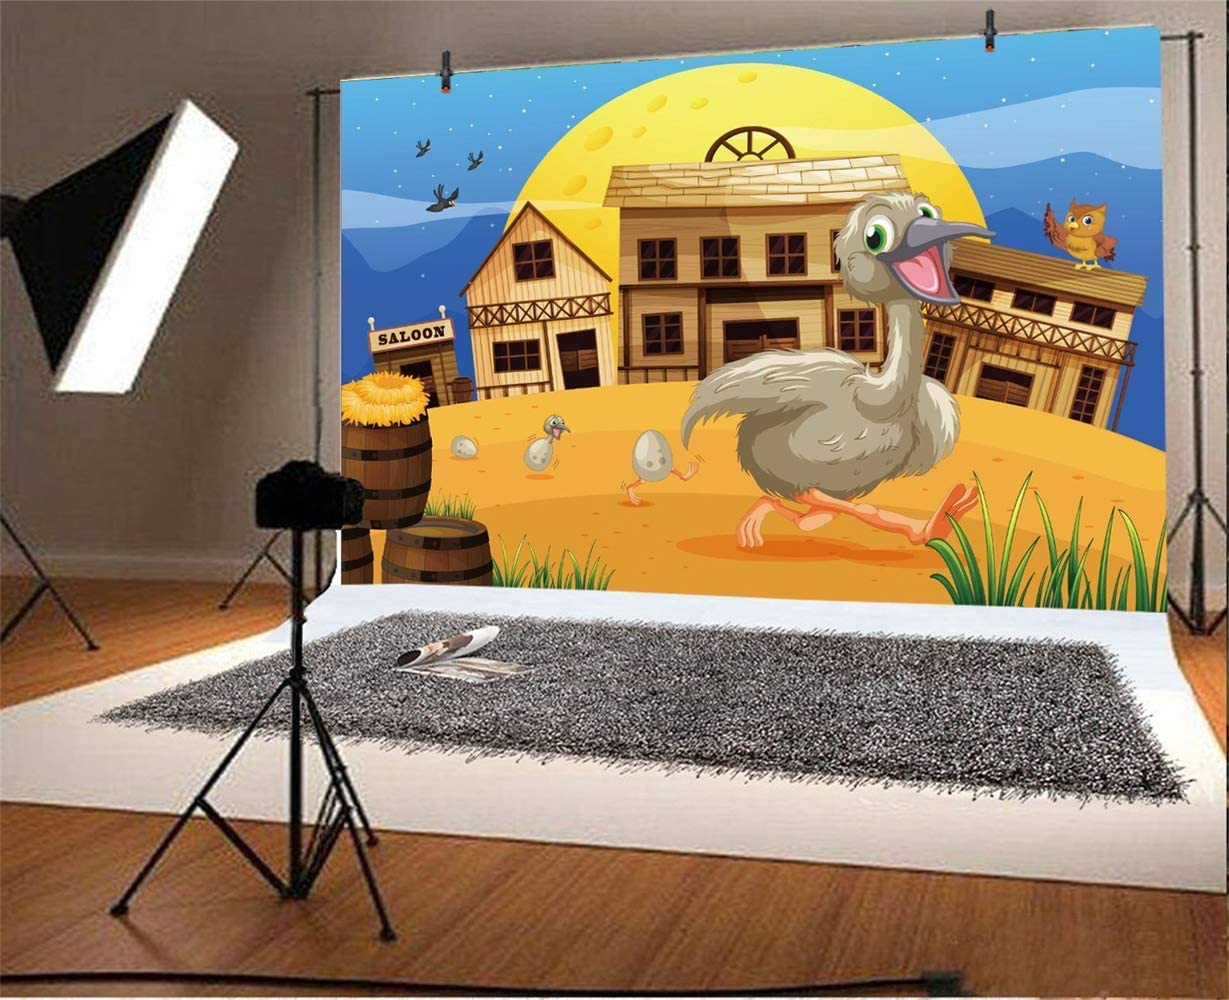 10x6.5ft Wild West Farm Saloon Polyester Photography Background Cartoon Farmhouses Yard Running Hen Chicks Bowies Huge Moon Backdrop Rural Countryside Cowboy Portrait Shoot Western Wallpaper